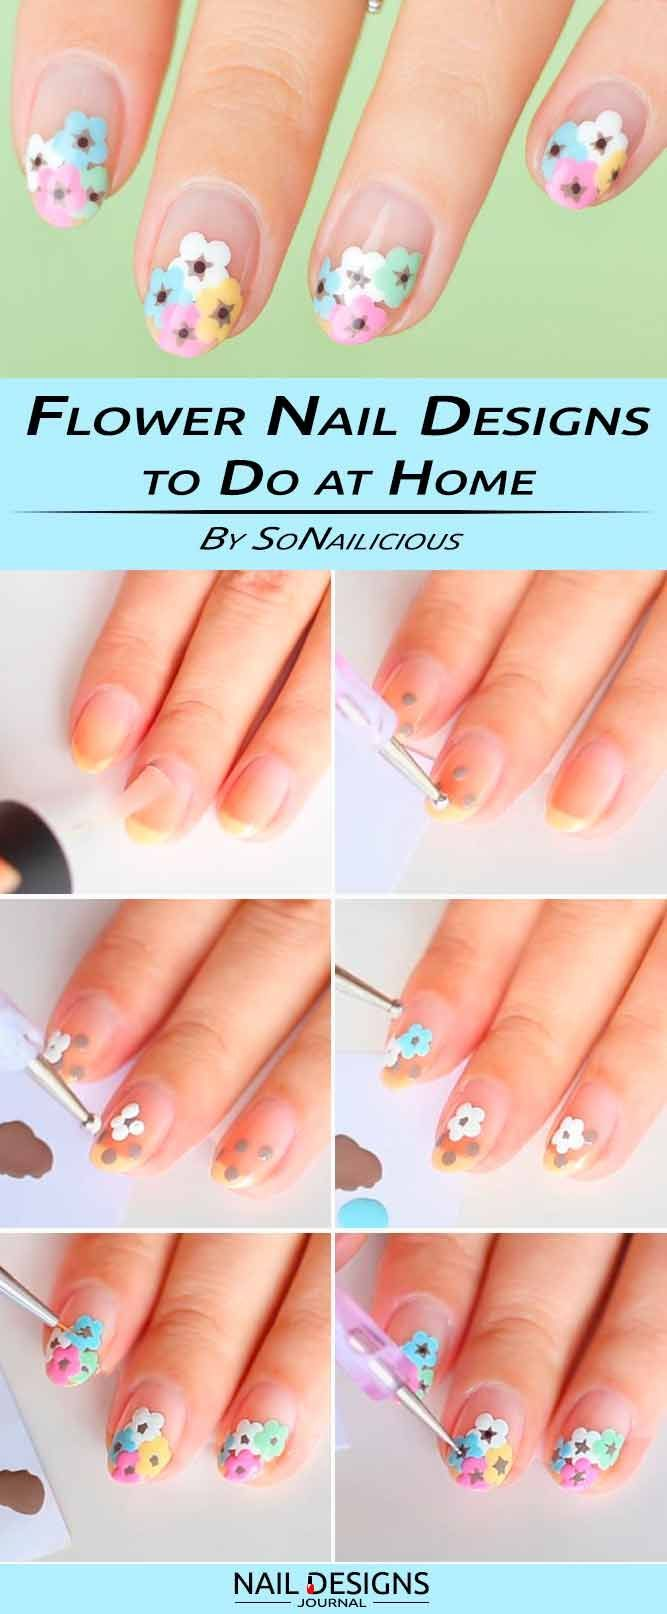 Diy Nails Guide To Perfect At Home Manicure Naildesignsjournal Com Diy Nail Designs Flower Nails Simple Nail Art Designs